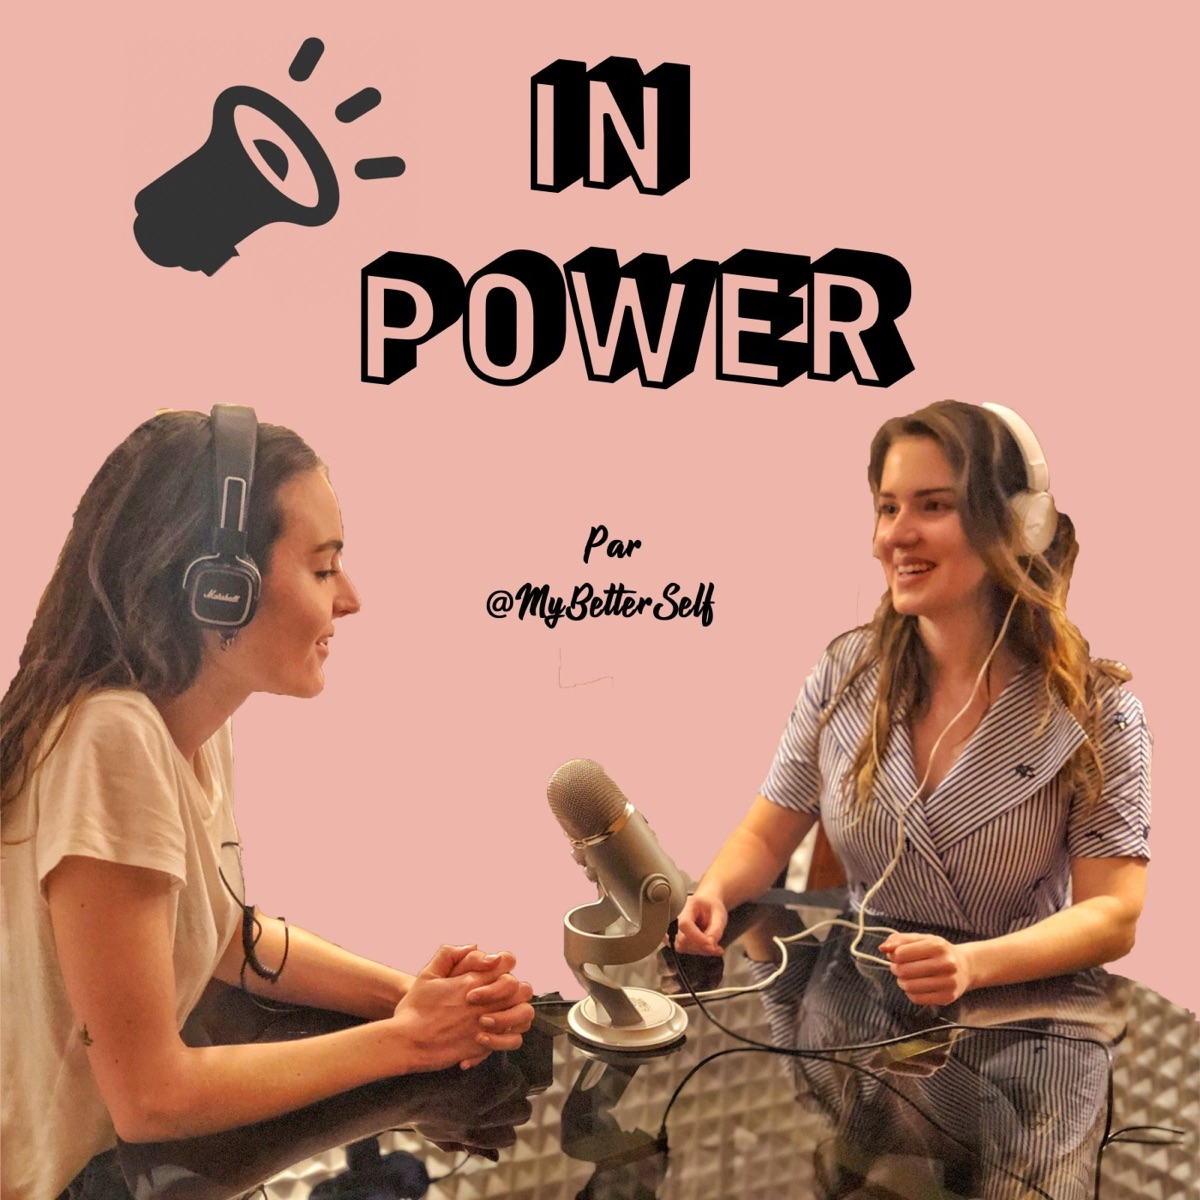 InPower par Louise Aubery